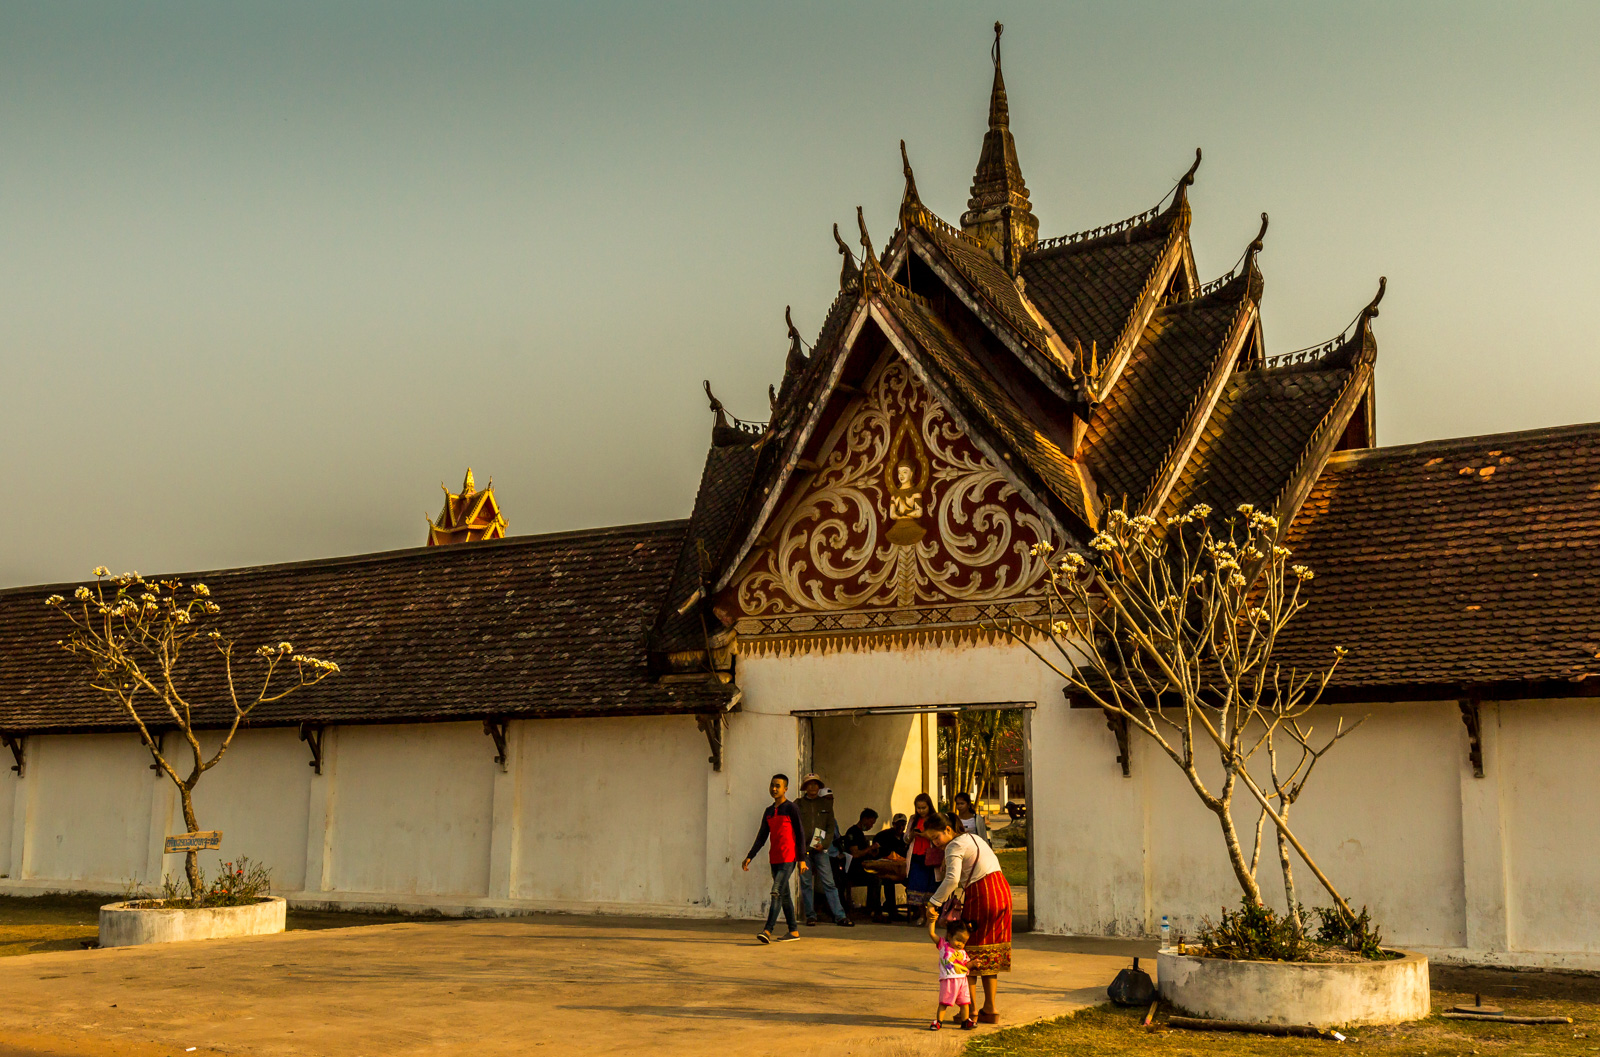 Lao people were lined up to visit the temple near Savannakhet.